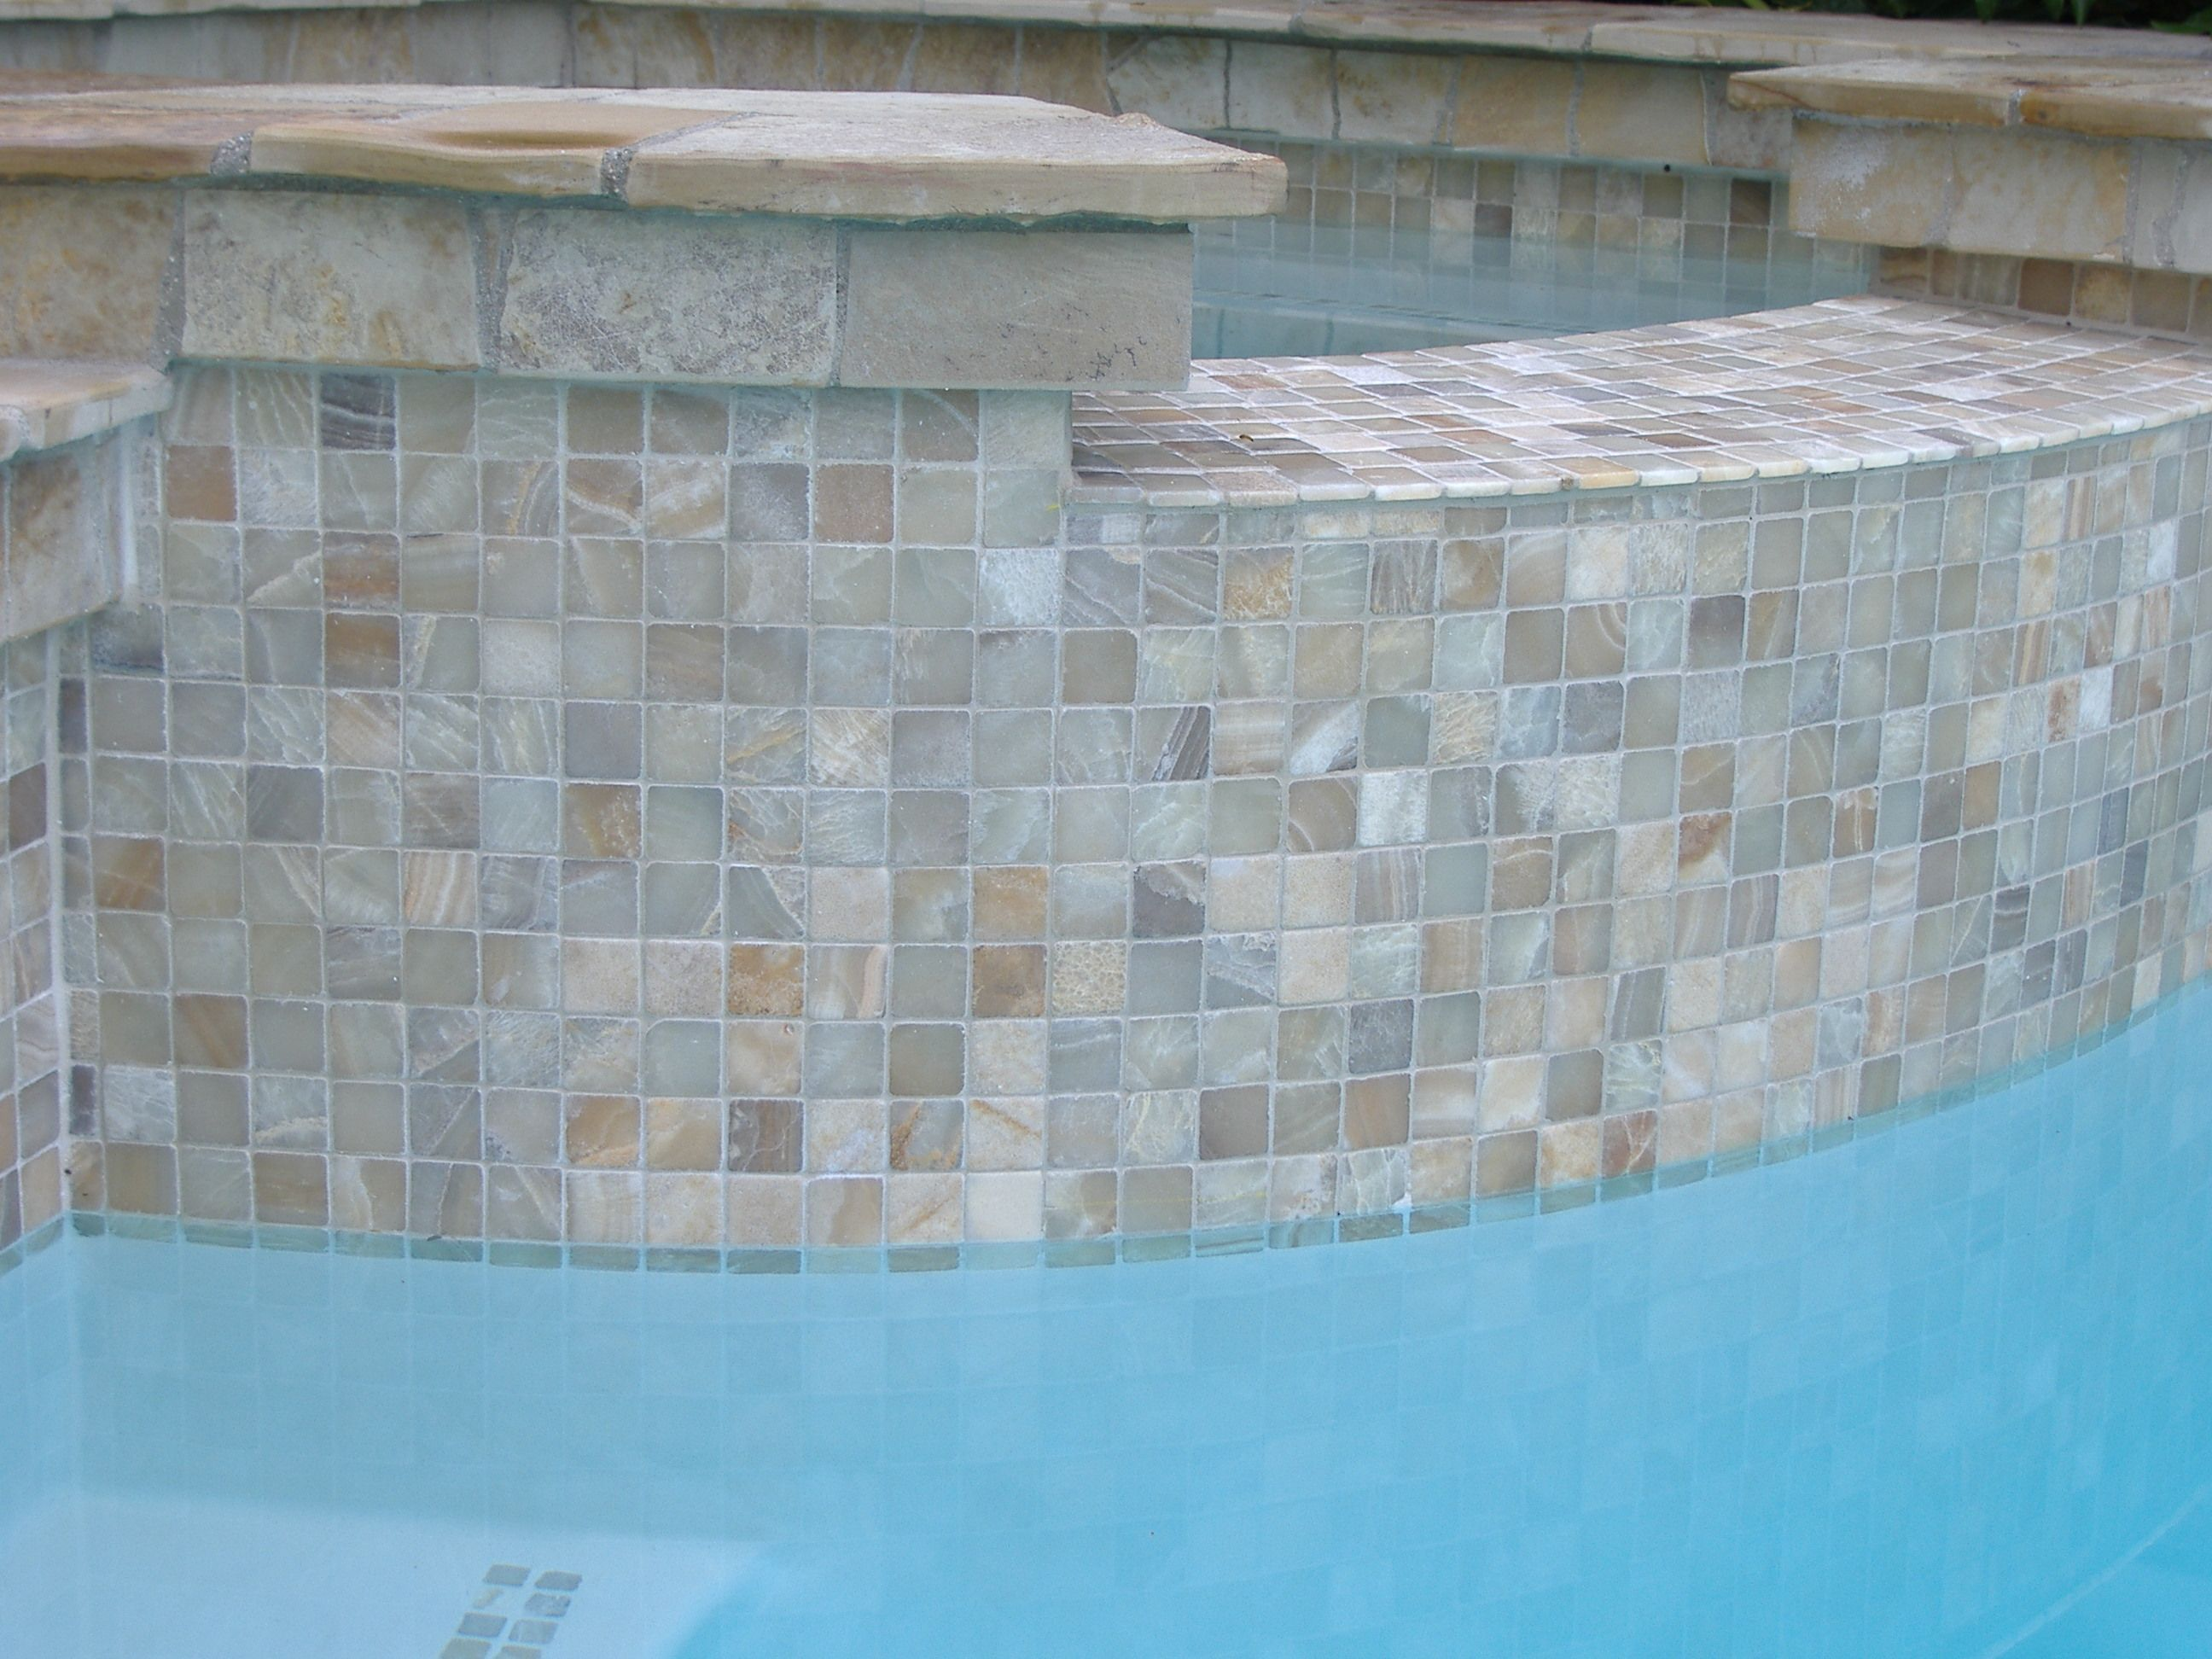 Pool Tile And Coping Ideas inground pool coping idea and cost guide Onyx 2 X 2 Mosaic Tiles By Zen Paradise Inc Natural Stone Pool Tile